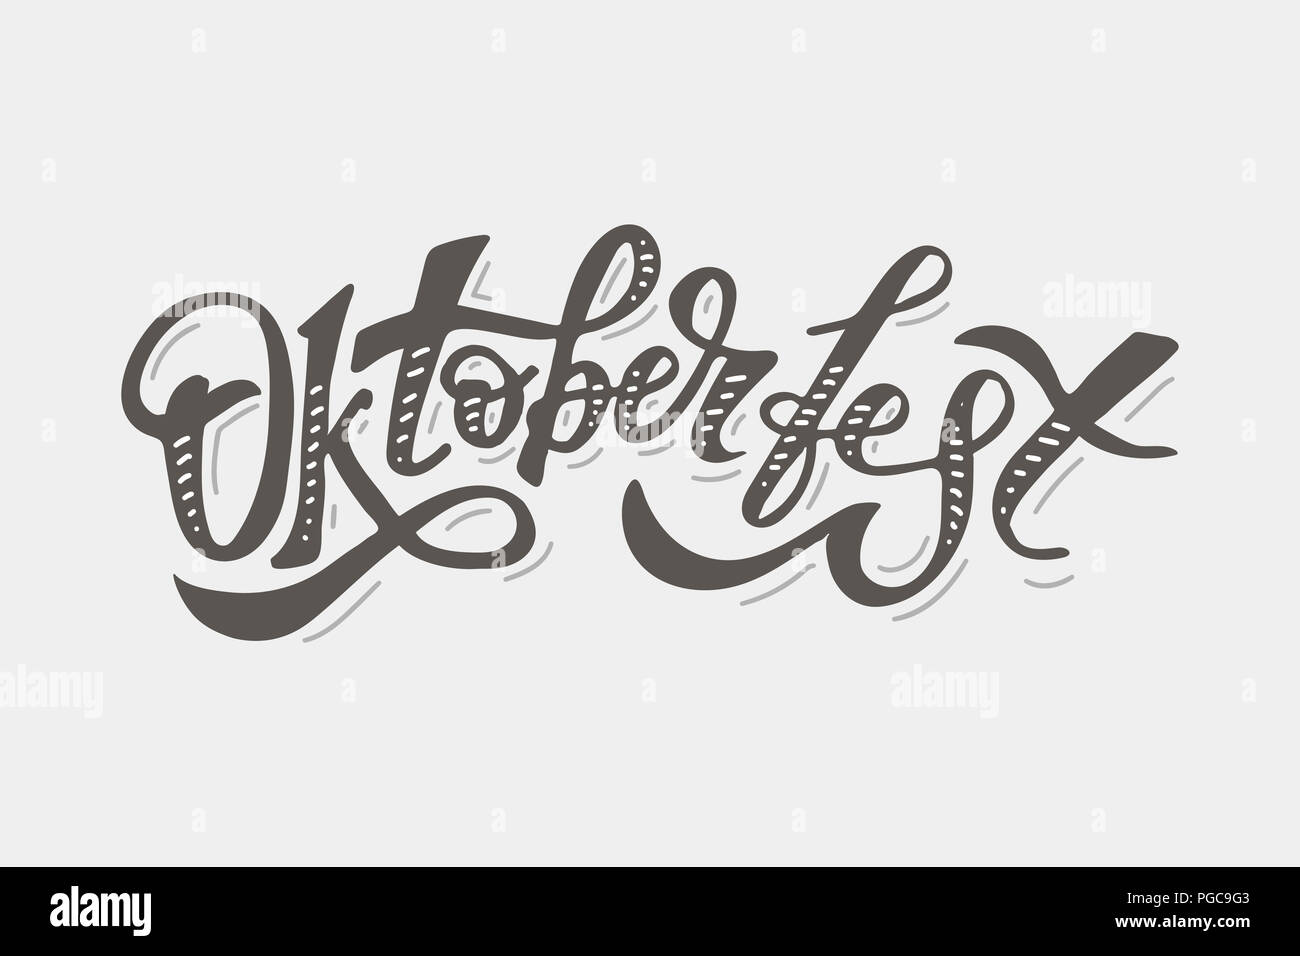 Oktoberfest lettering Calligraphy Brush Text Holiday Illustration - Stock Image